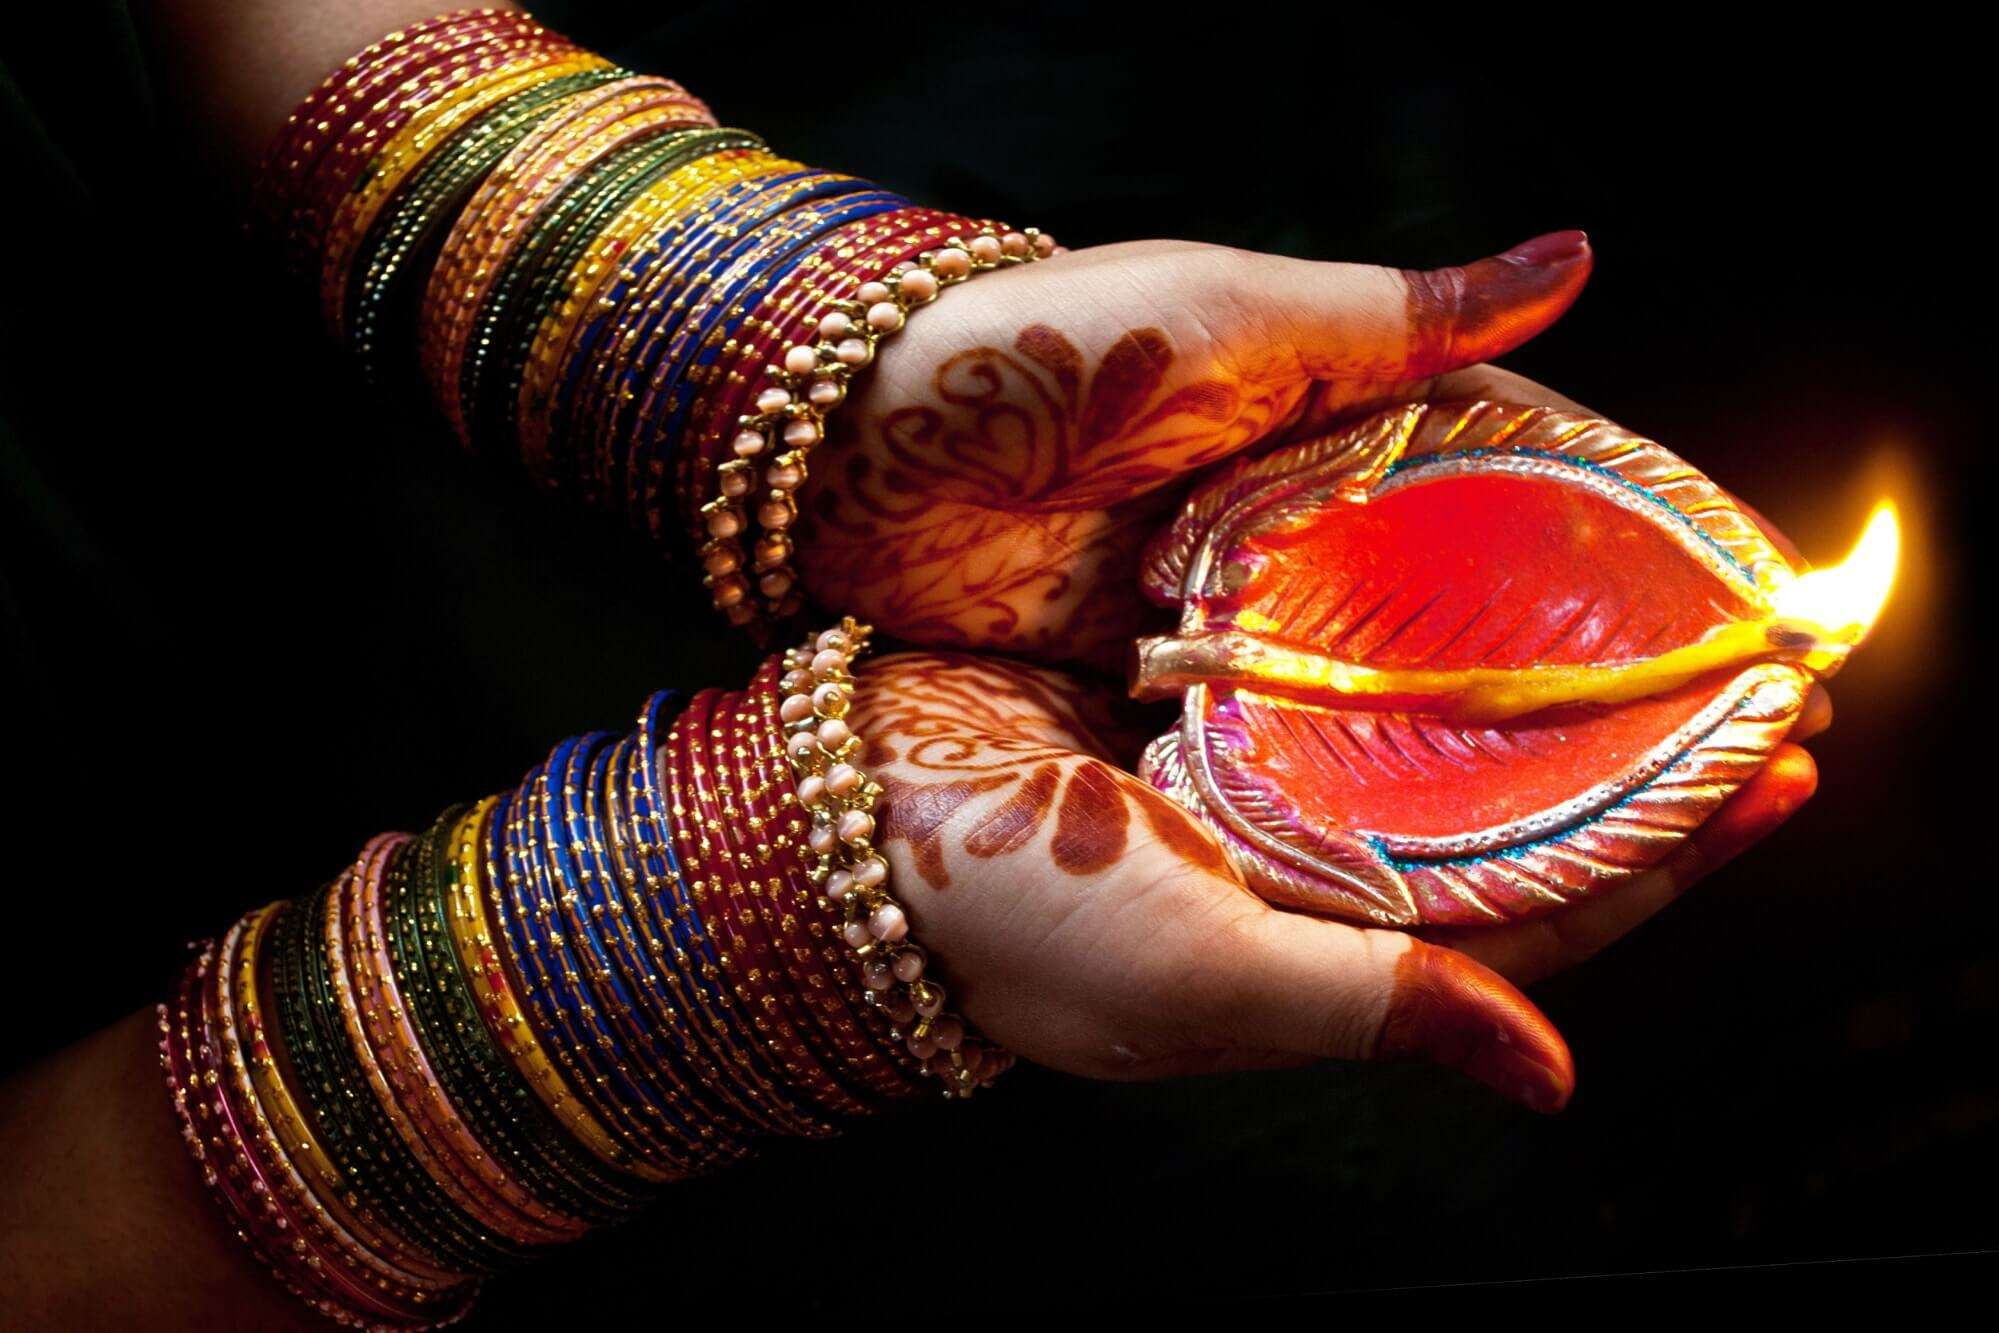 a women wearing bangles carrying a diya in her hands